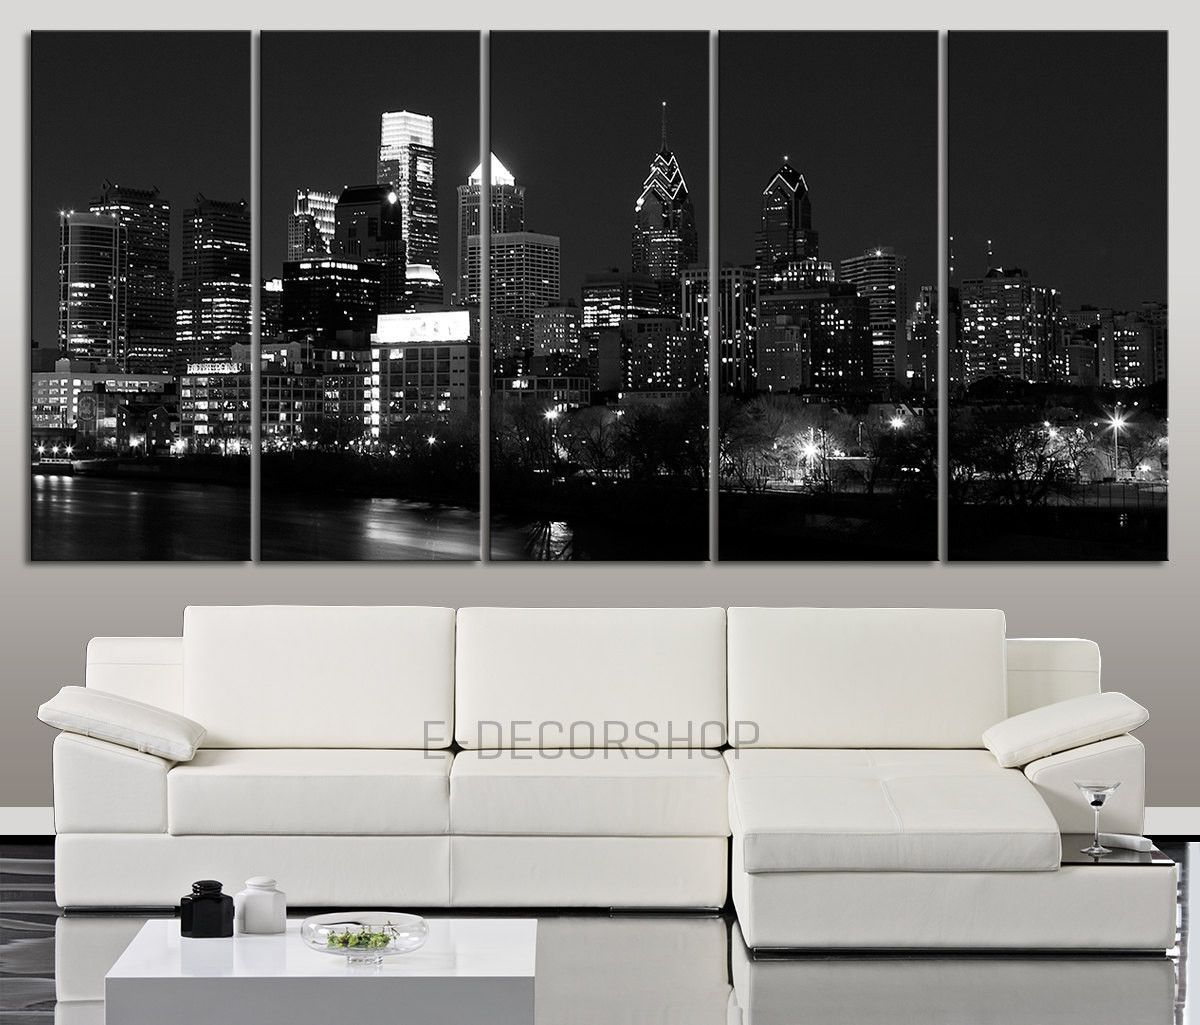 Large Canvas Art Wall Art Canvas Print Philadelphia Skyline By Night Philadelphia City View Large Canvas Wall Art Canvas Art Prints Wall Art Canvas Prints